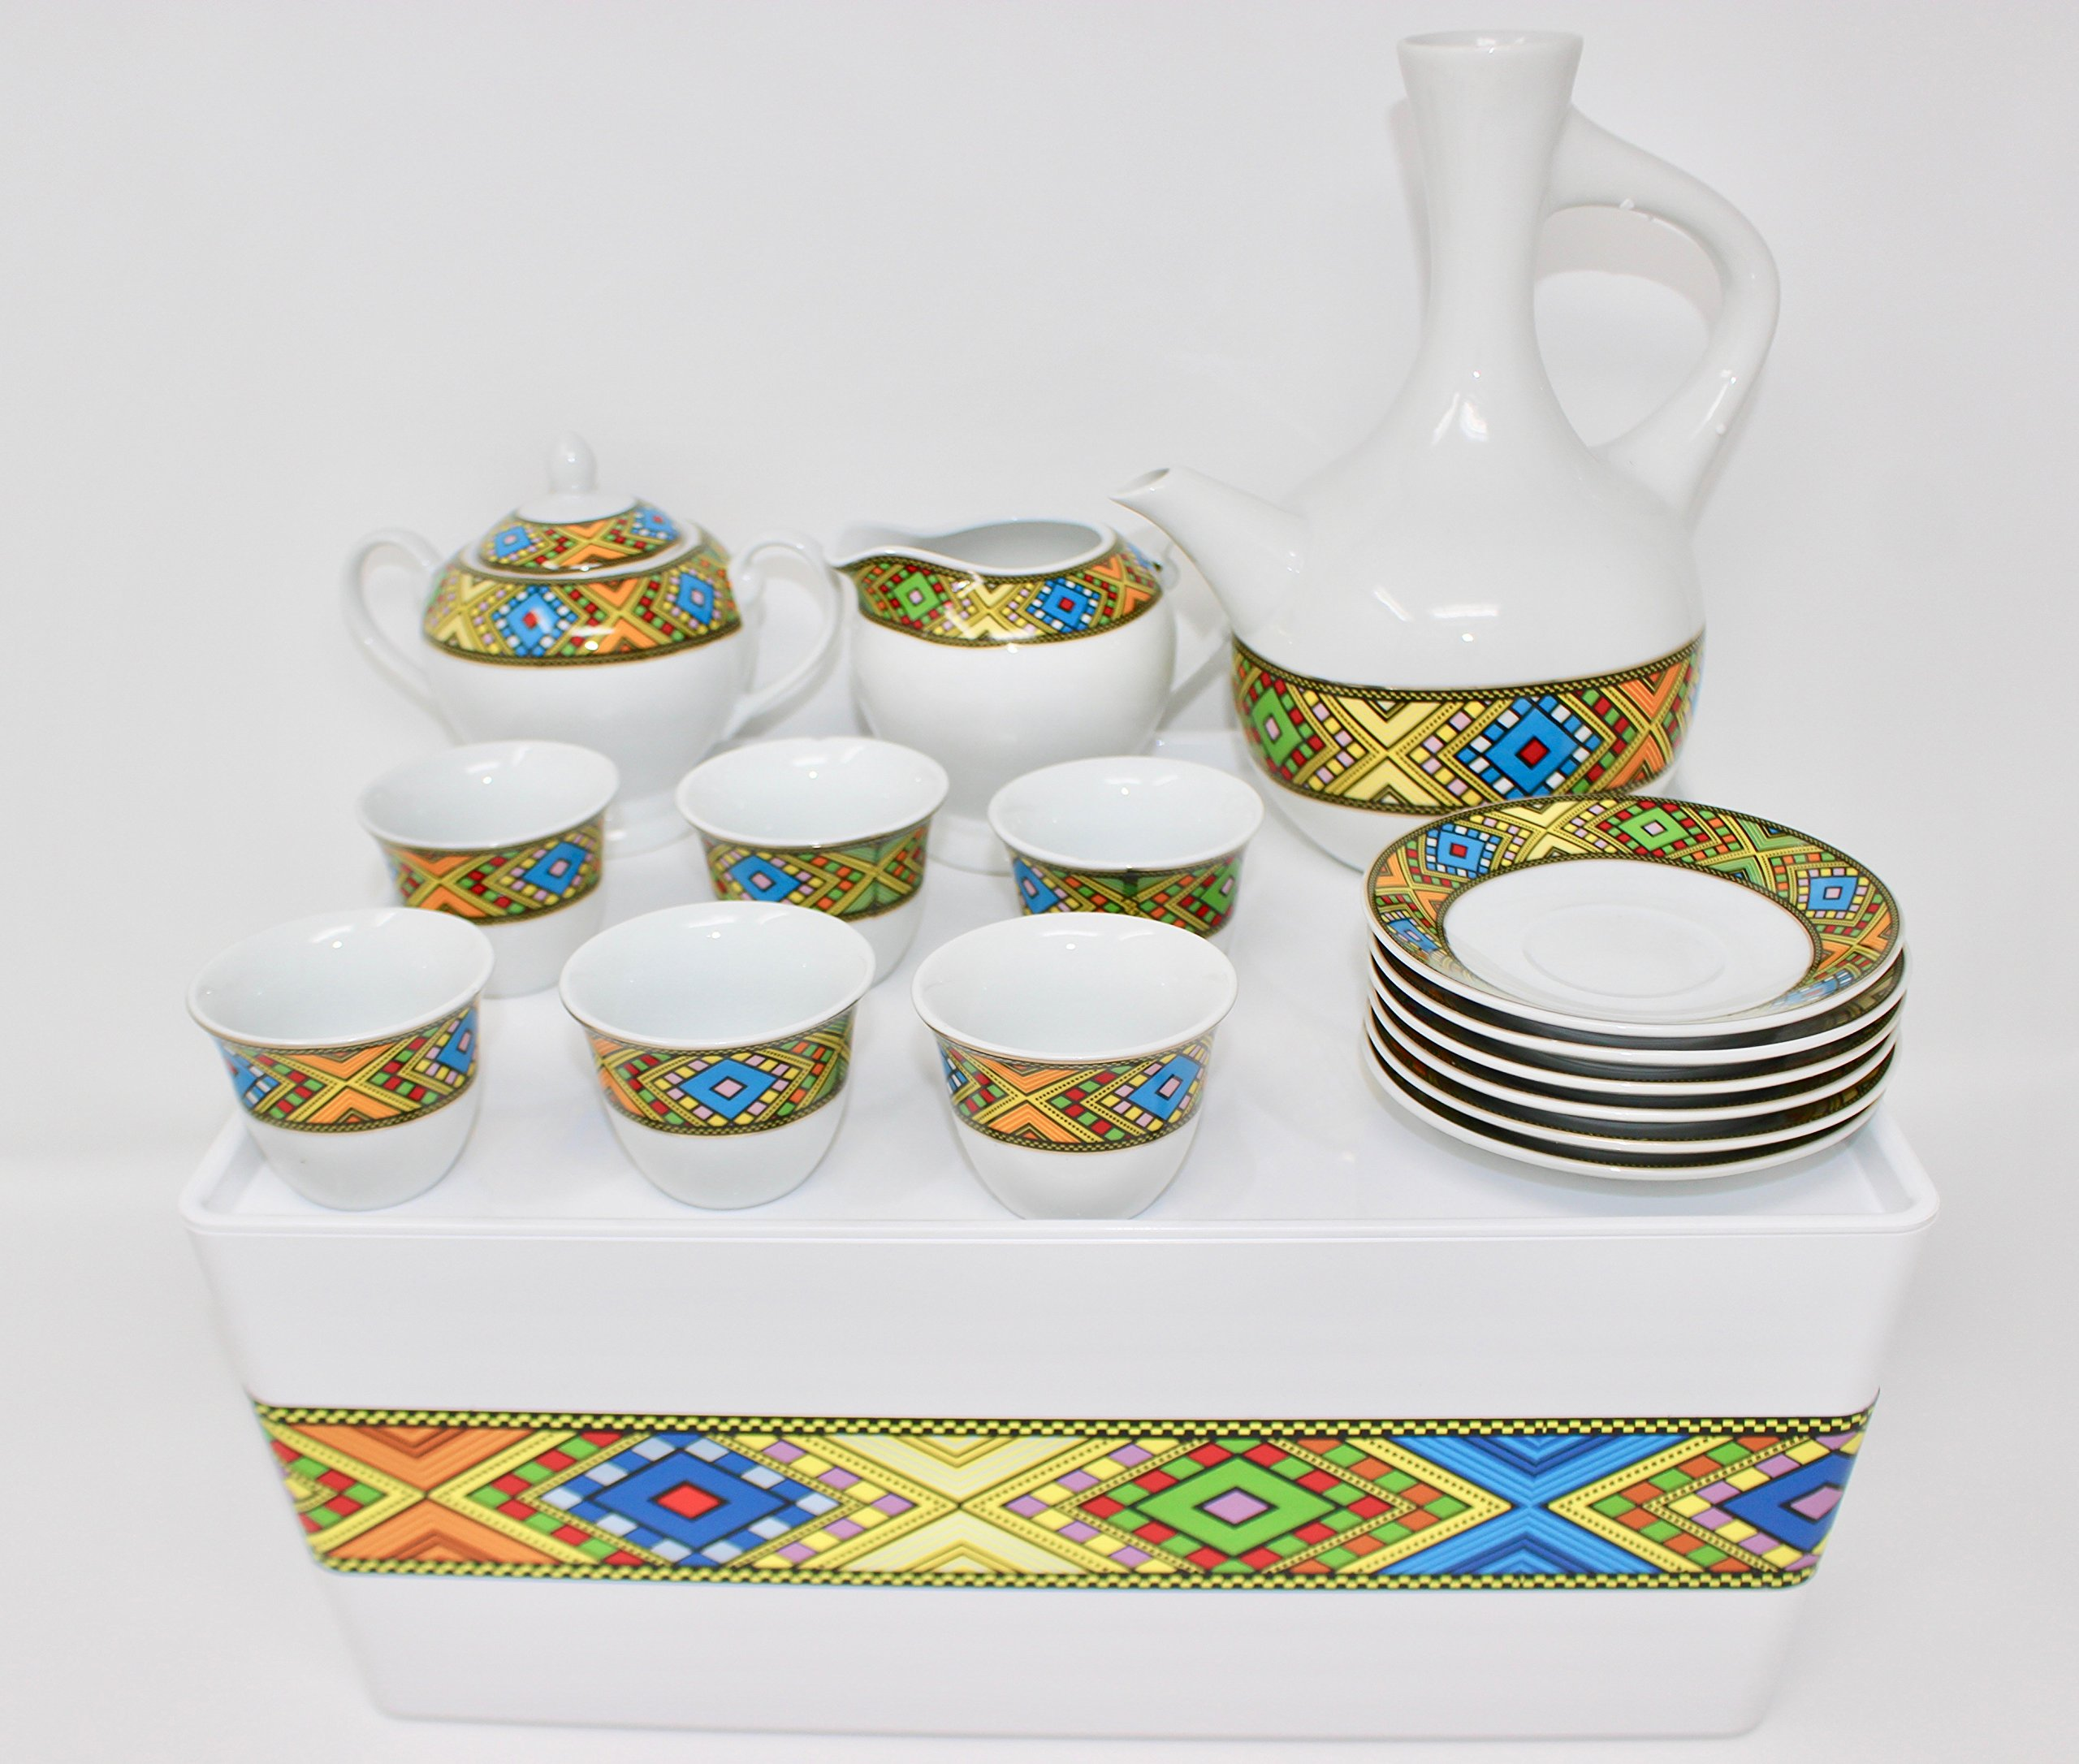 Ethiopian/Eritrean Coffee Cups with Rékébot, Abyssinian Coffee cups, Jebena, Rekebot, Ethiopian art, Eritrean Coffee, Habesha Coffee, Ethiopian Coffee ceremony, Full coffee Set